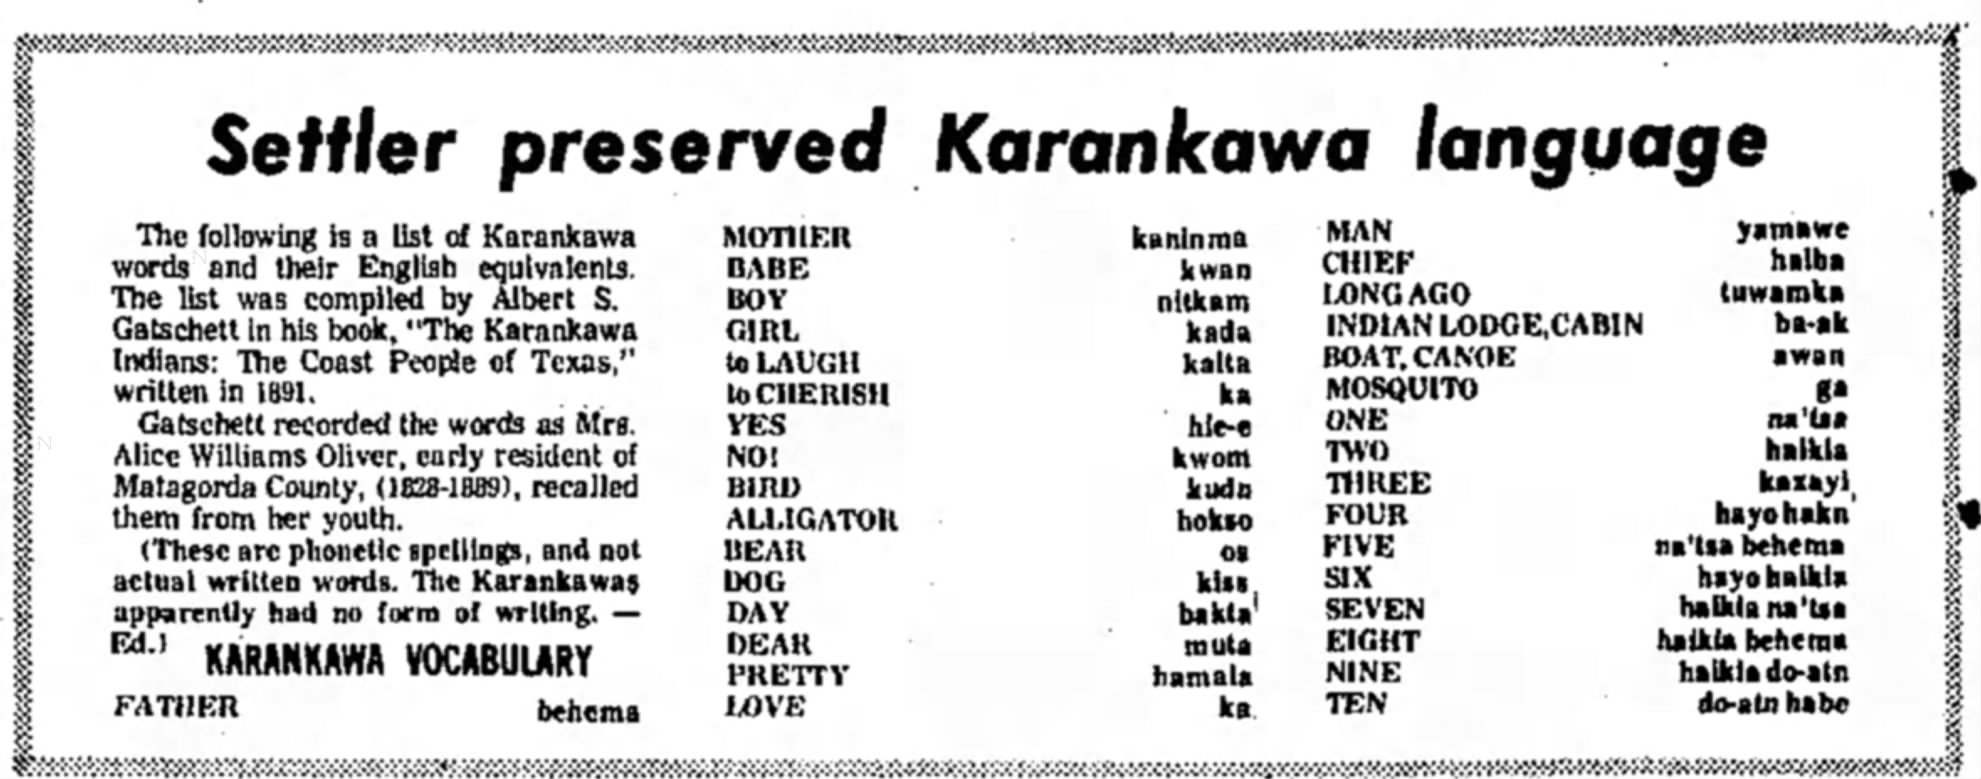 Karankawa Food Facts